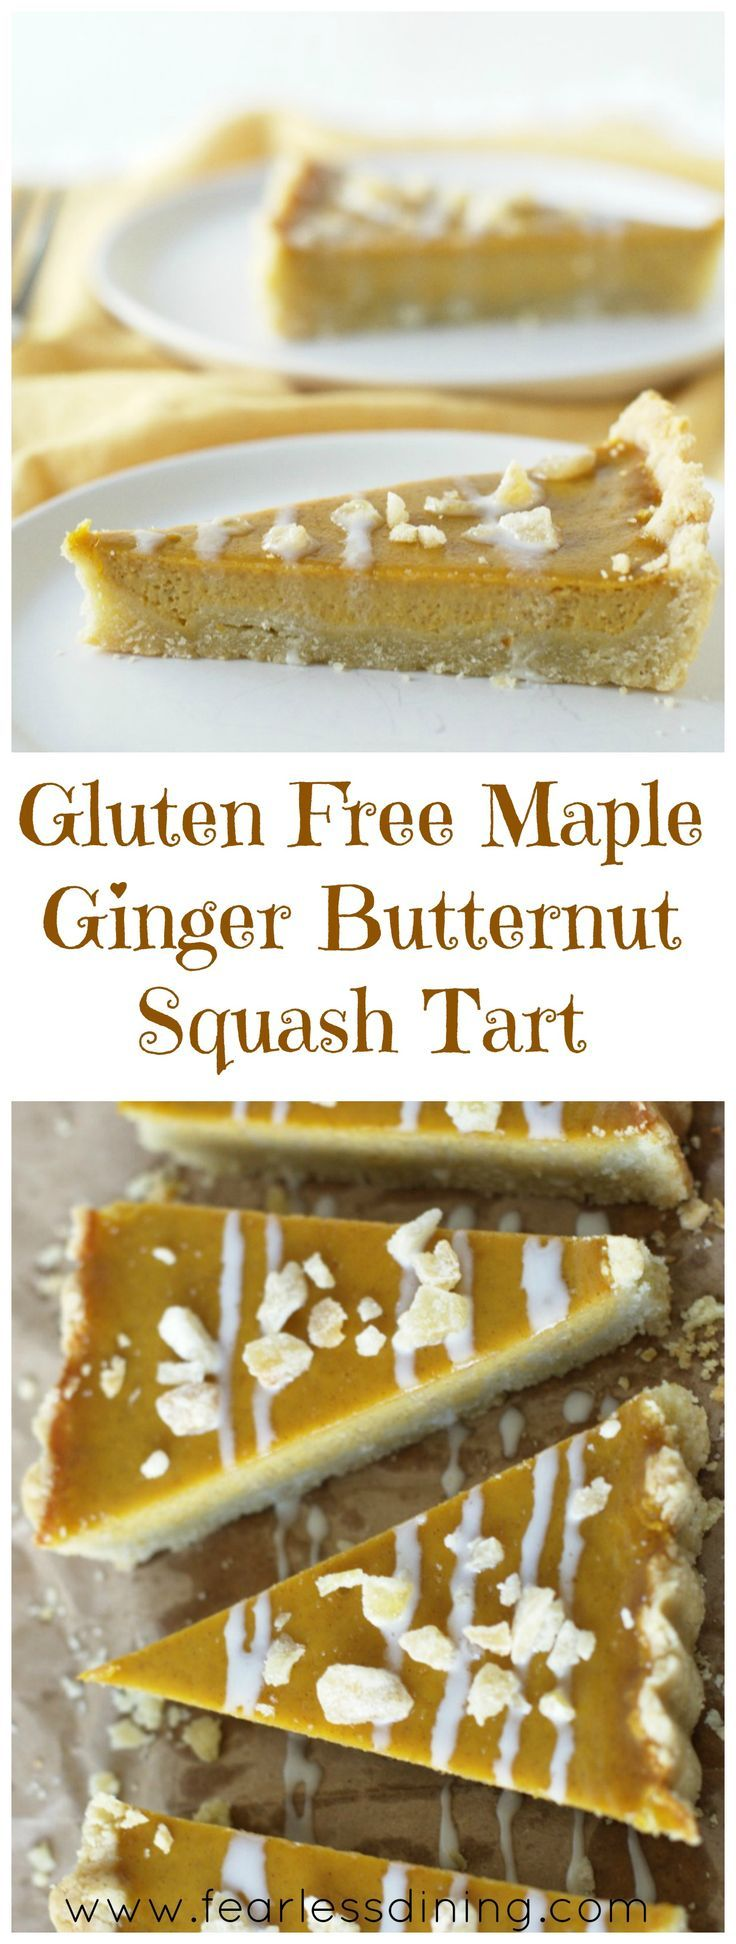 This dessert is perfect for the holidays. Gluten Free Maple Ginger Butternut Squash Tart. Easy and delicious! http://www.fearlessdining.com